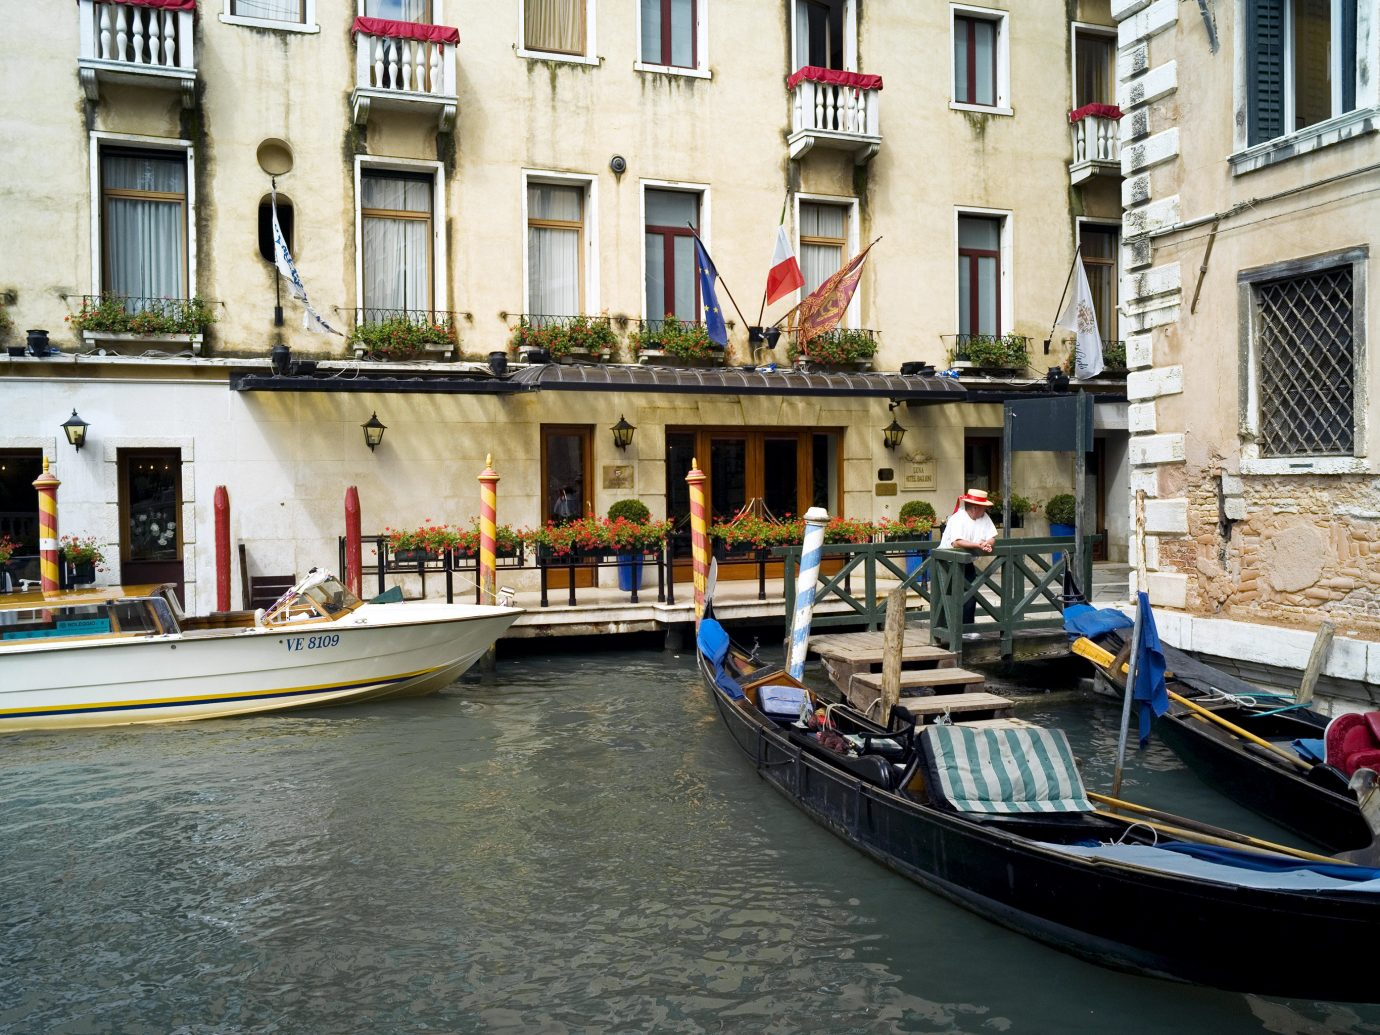 City Classic Elegant Exterior Historic Hotels Italy Luxury Travel Romance Romantic Venice Waterfront building Boat outdoor water vehicle Canal Town waterway gondola watercraft tourism travel